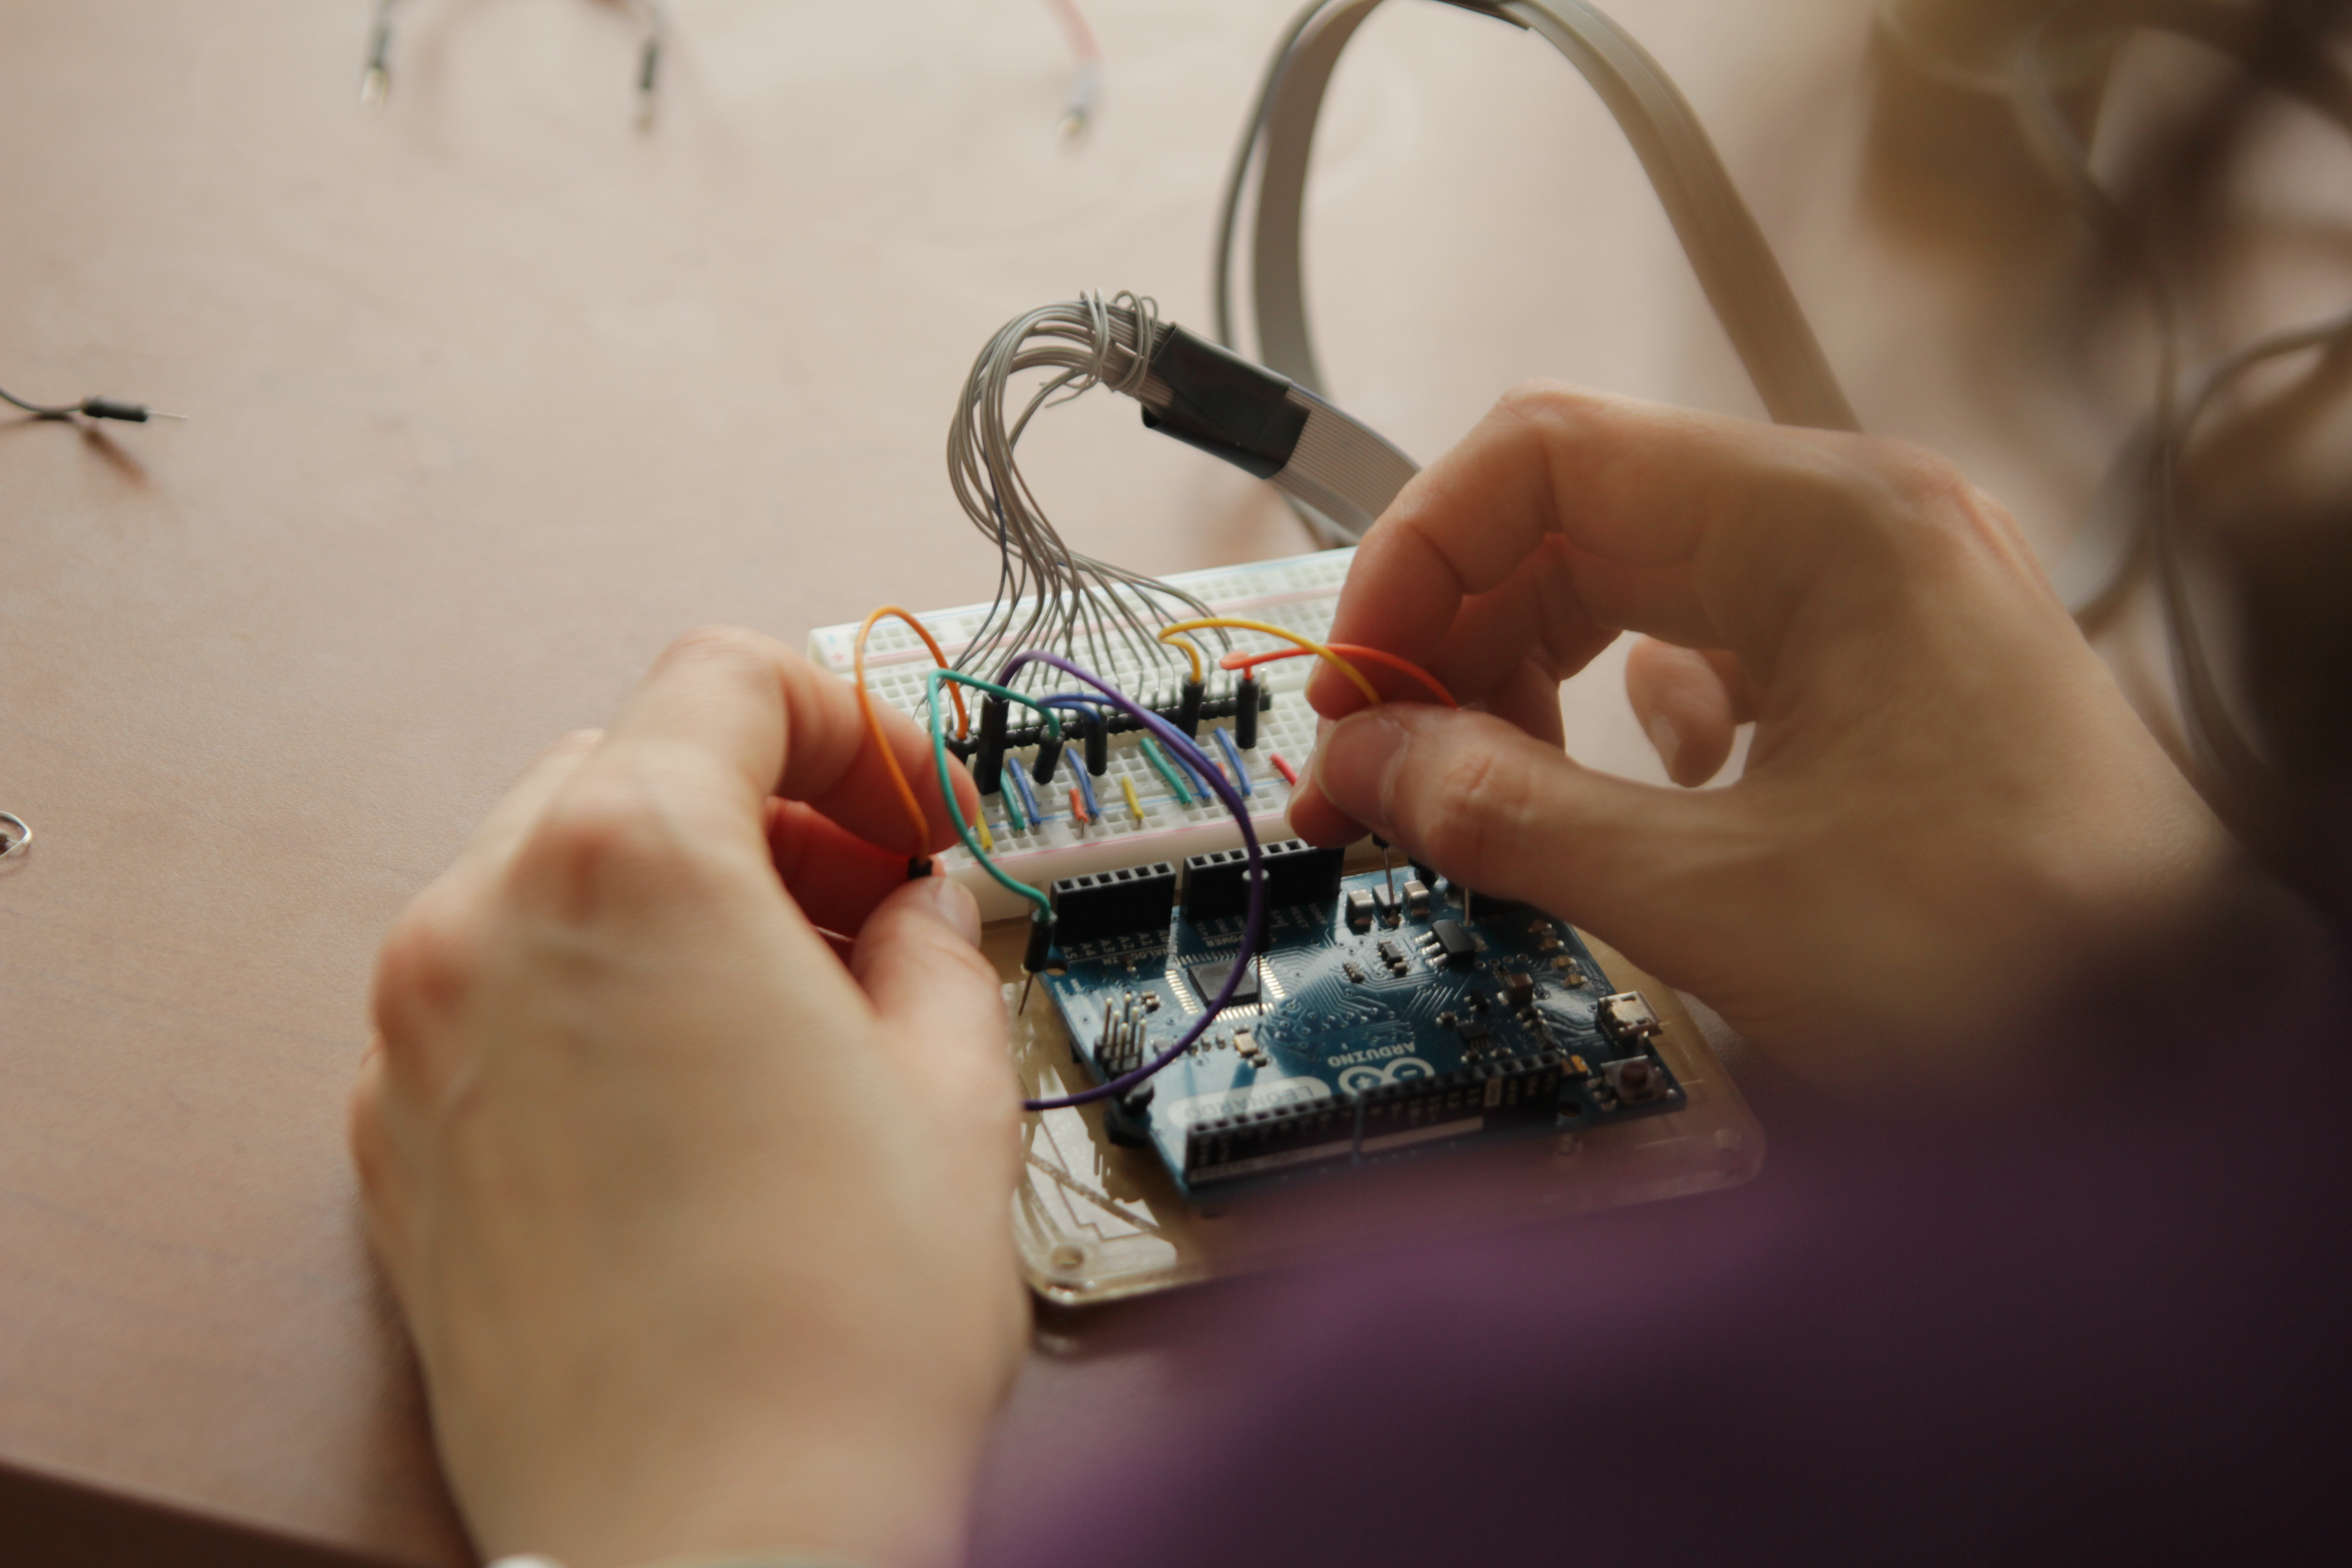 Picture showing and Arduino microcontroller, where wires are being connected by the researcher